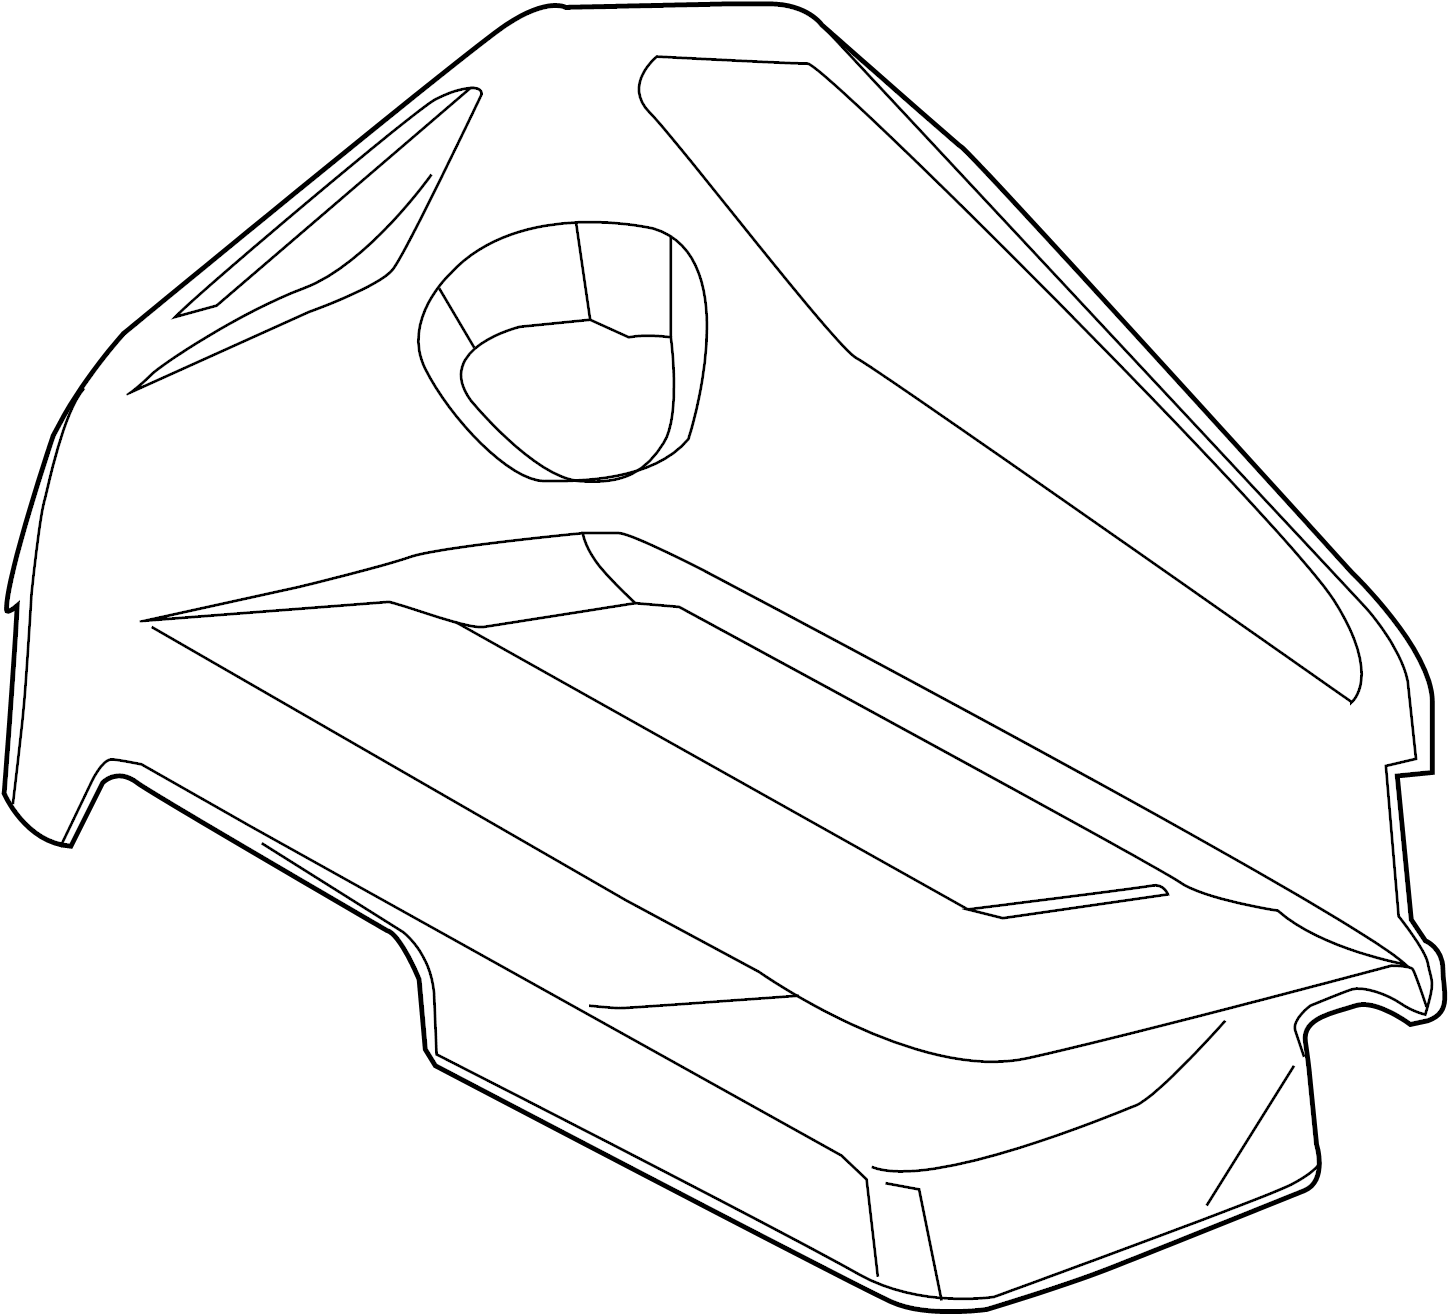 Ford Escape Engine Cover 1 6 Liter Transaxle Appearance